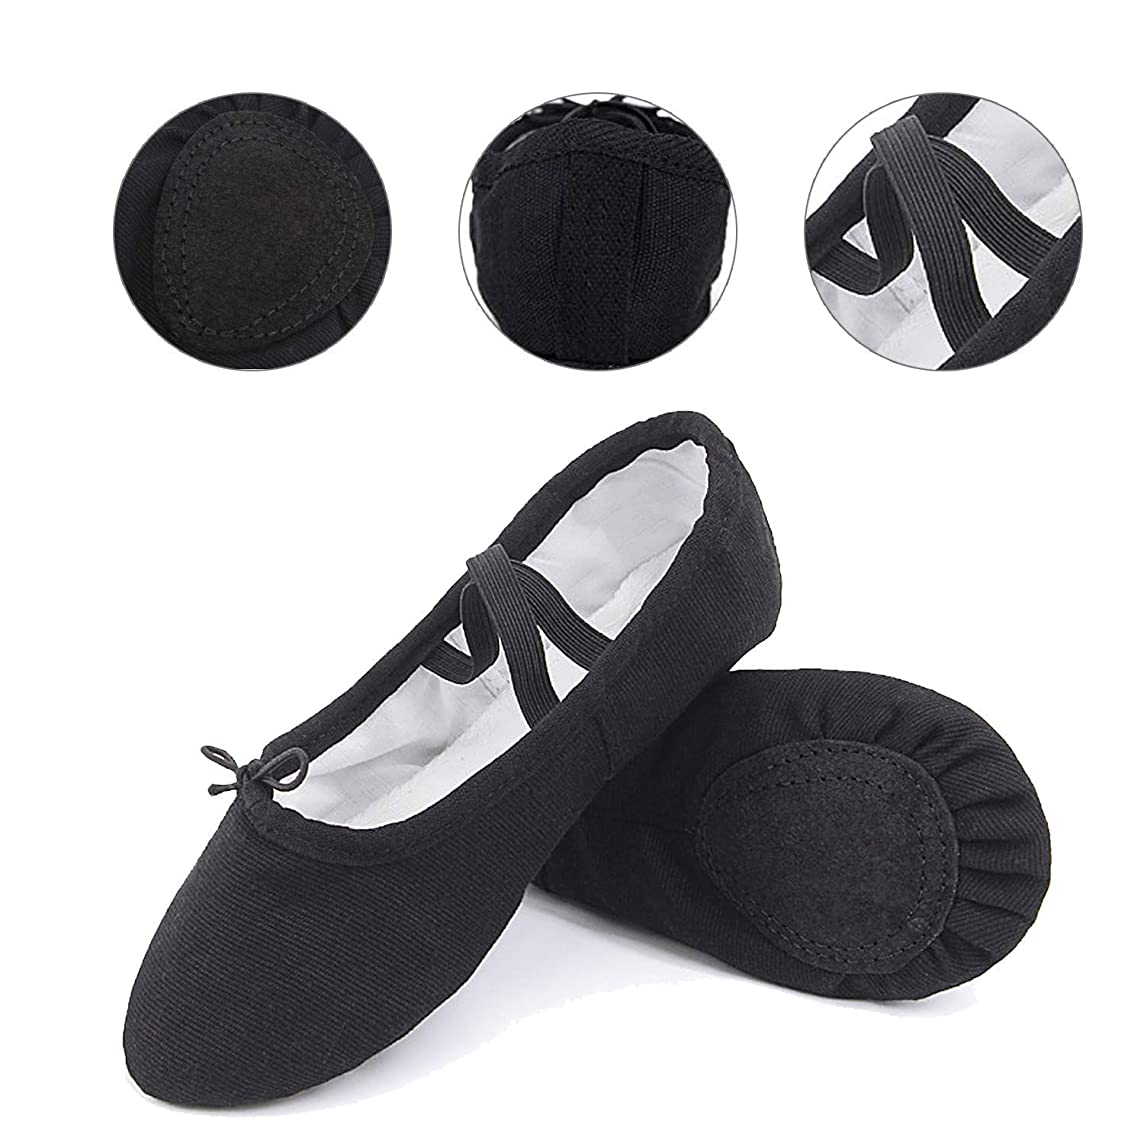 Matie Fix Ballet Shoes Girls Canvas Ballet Slipper/Ballet Shoe/Yoga Dance Shoe